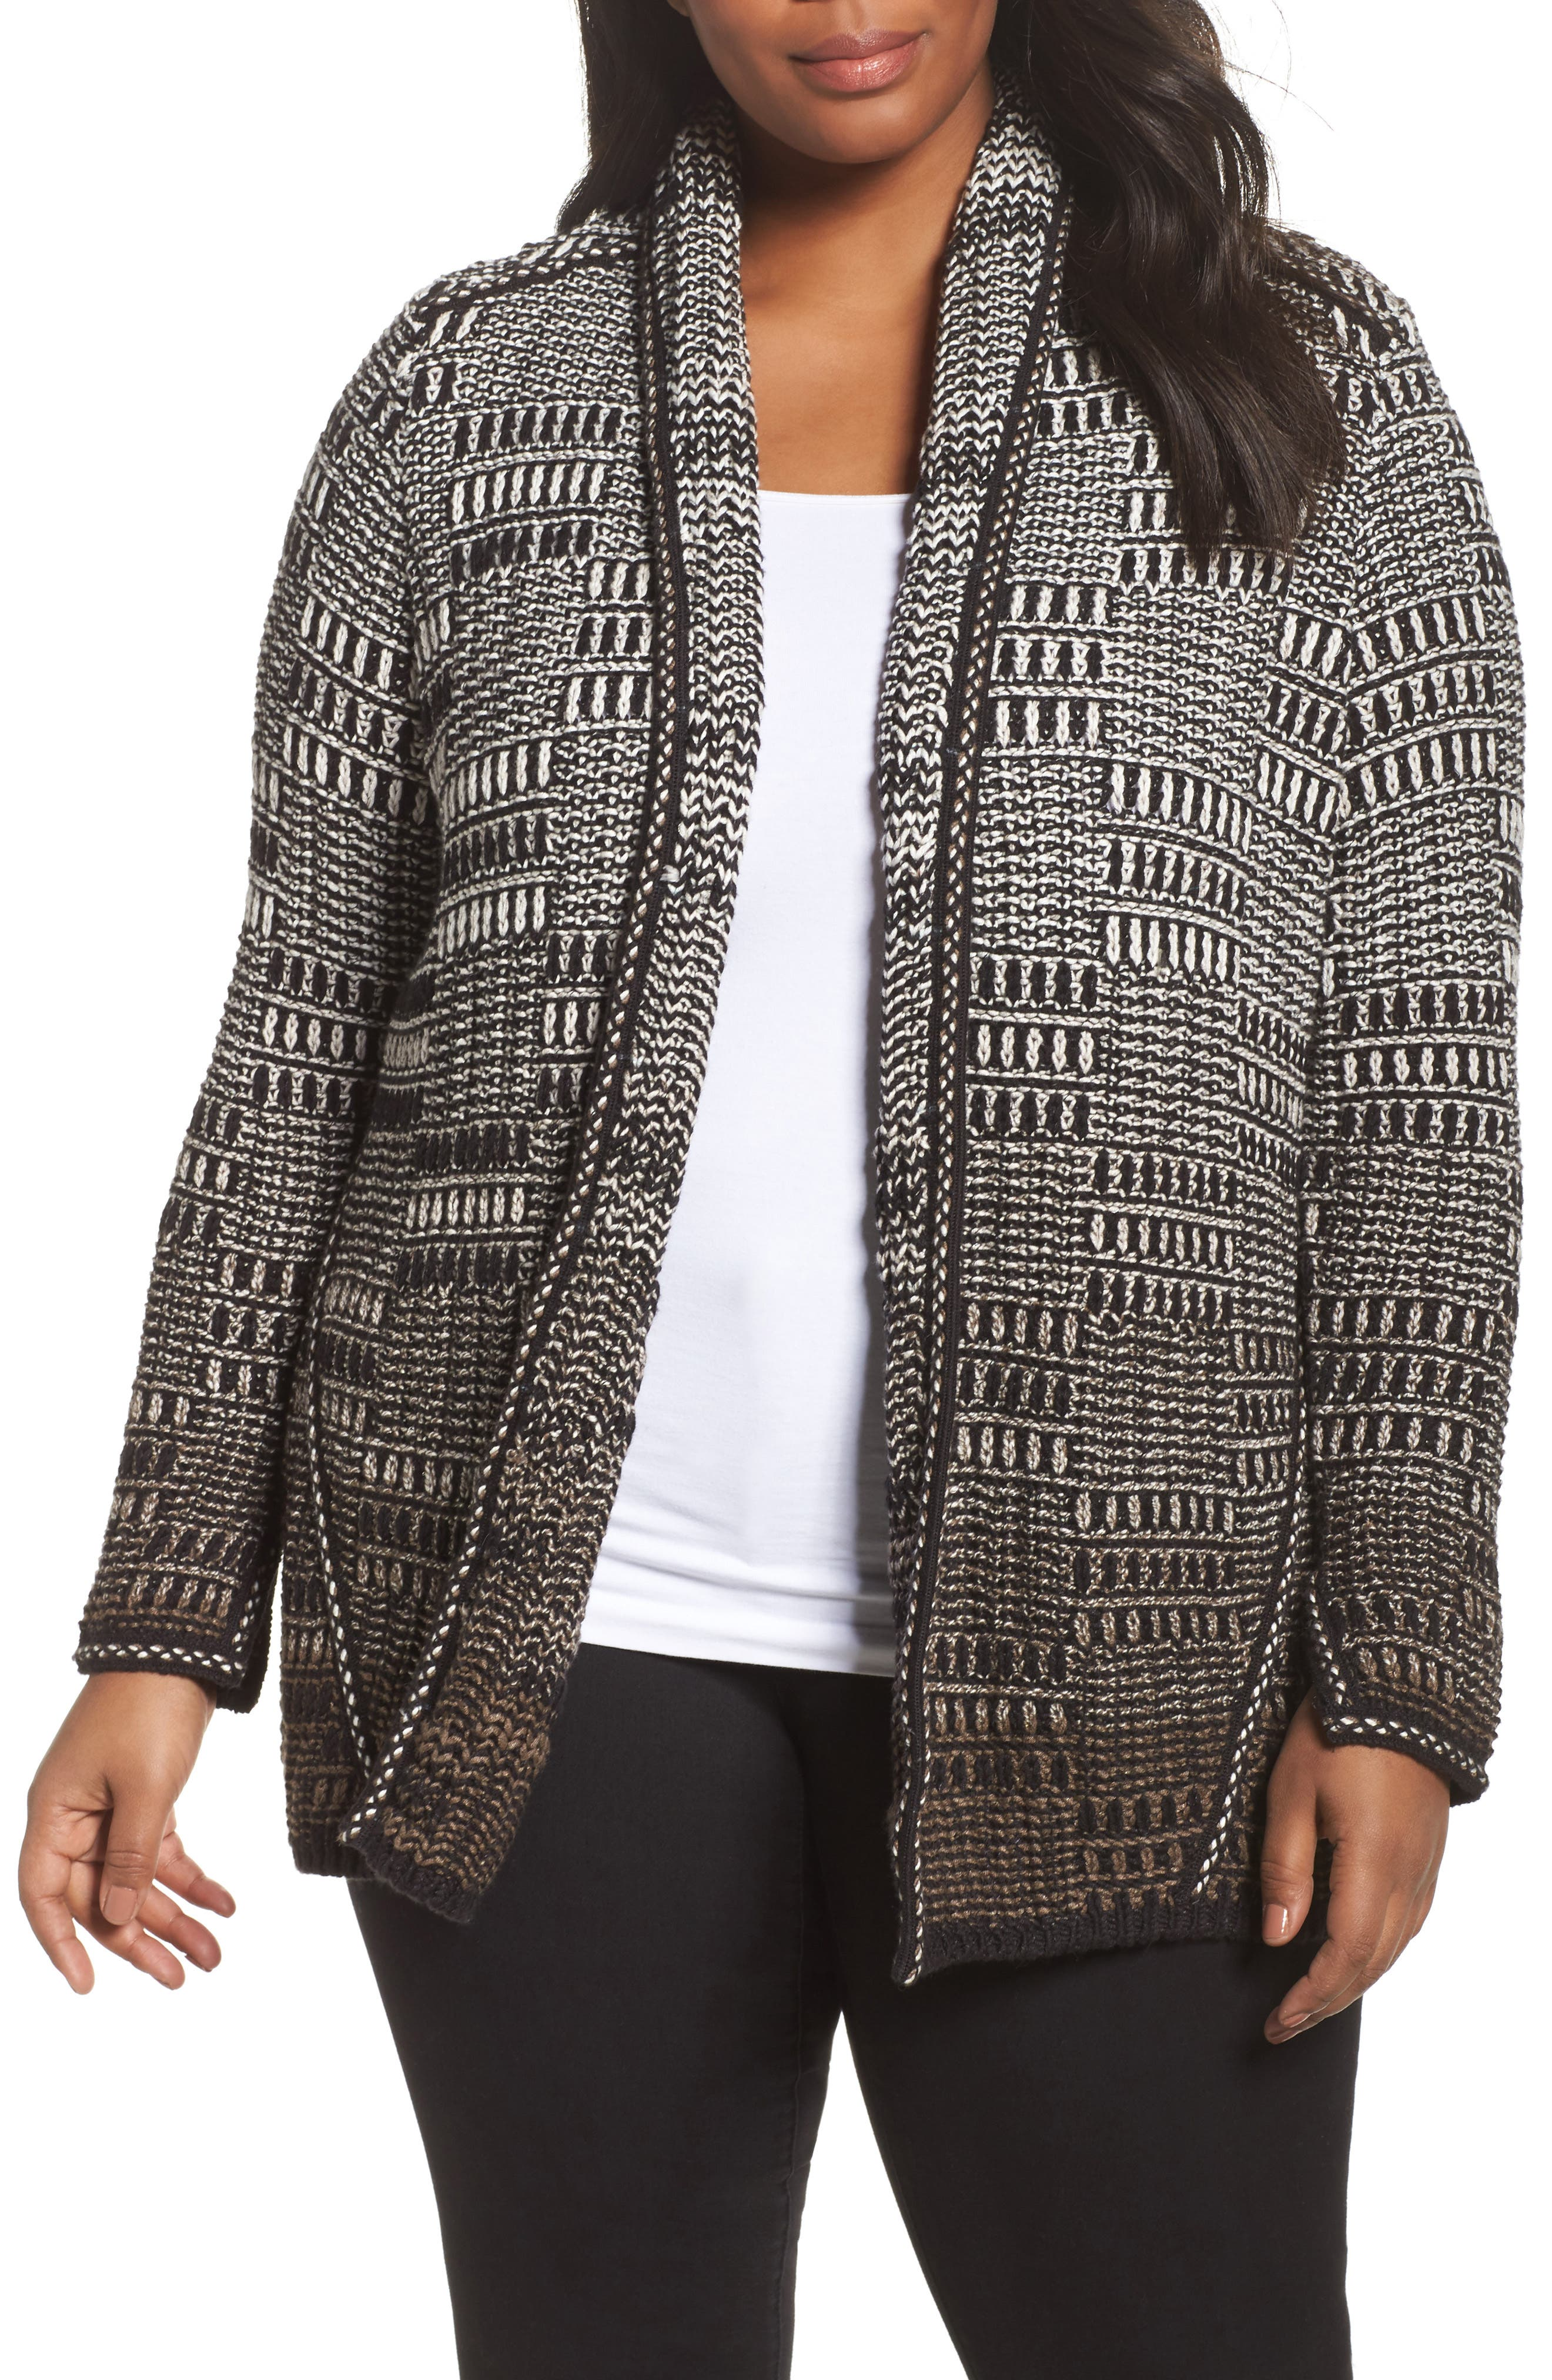 Alternate Image 1 Selected - NIC+ZOE All the Lines Cardigan (Plus Size)